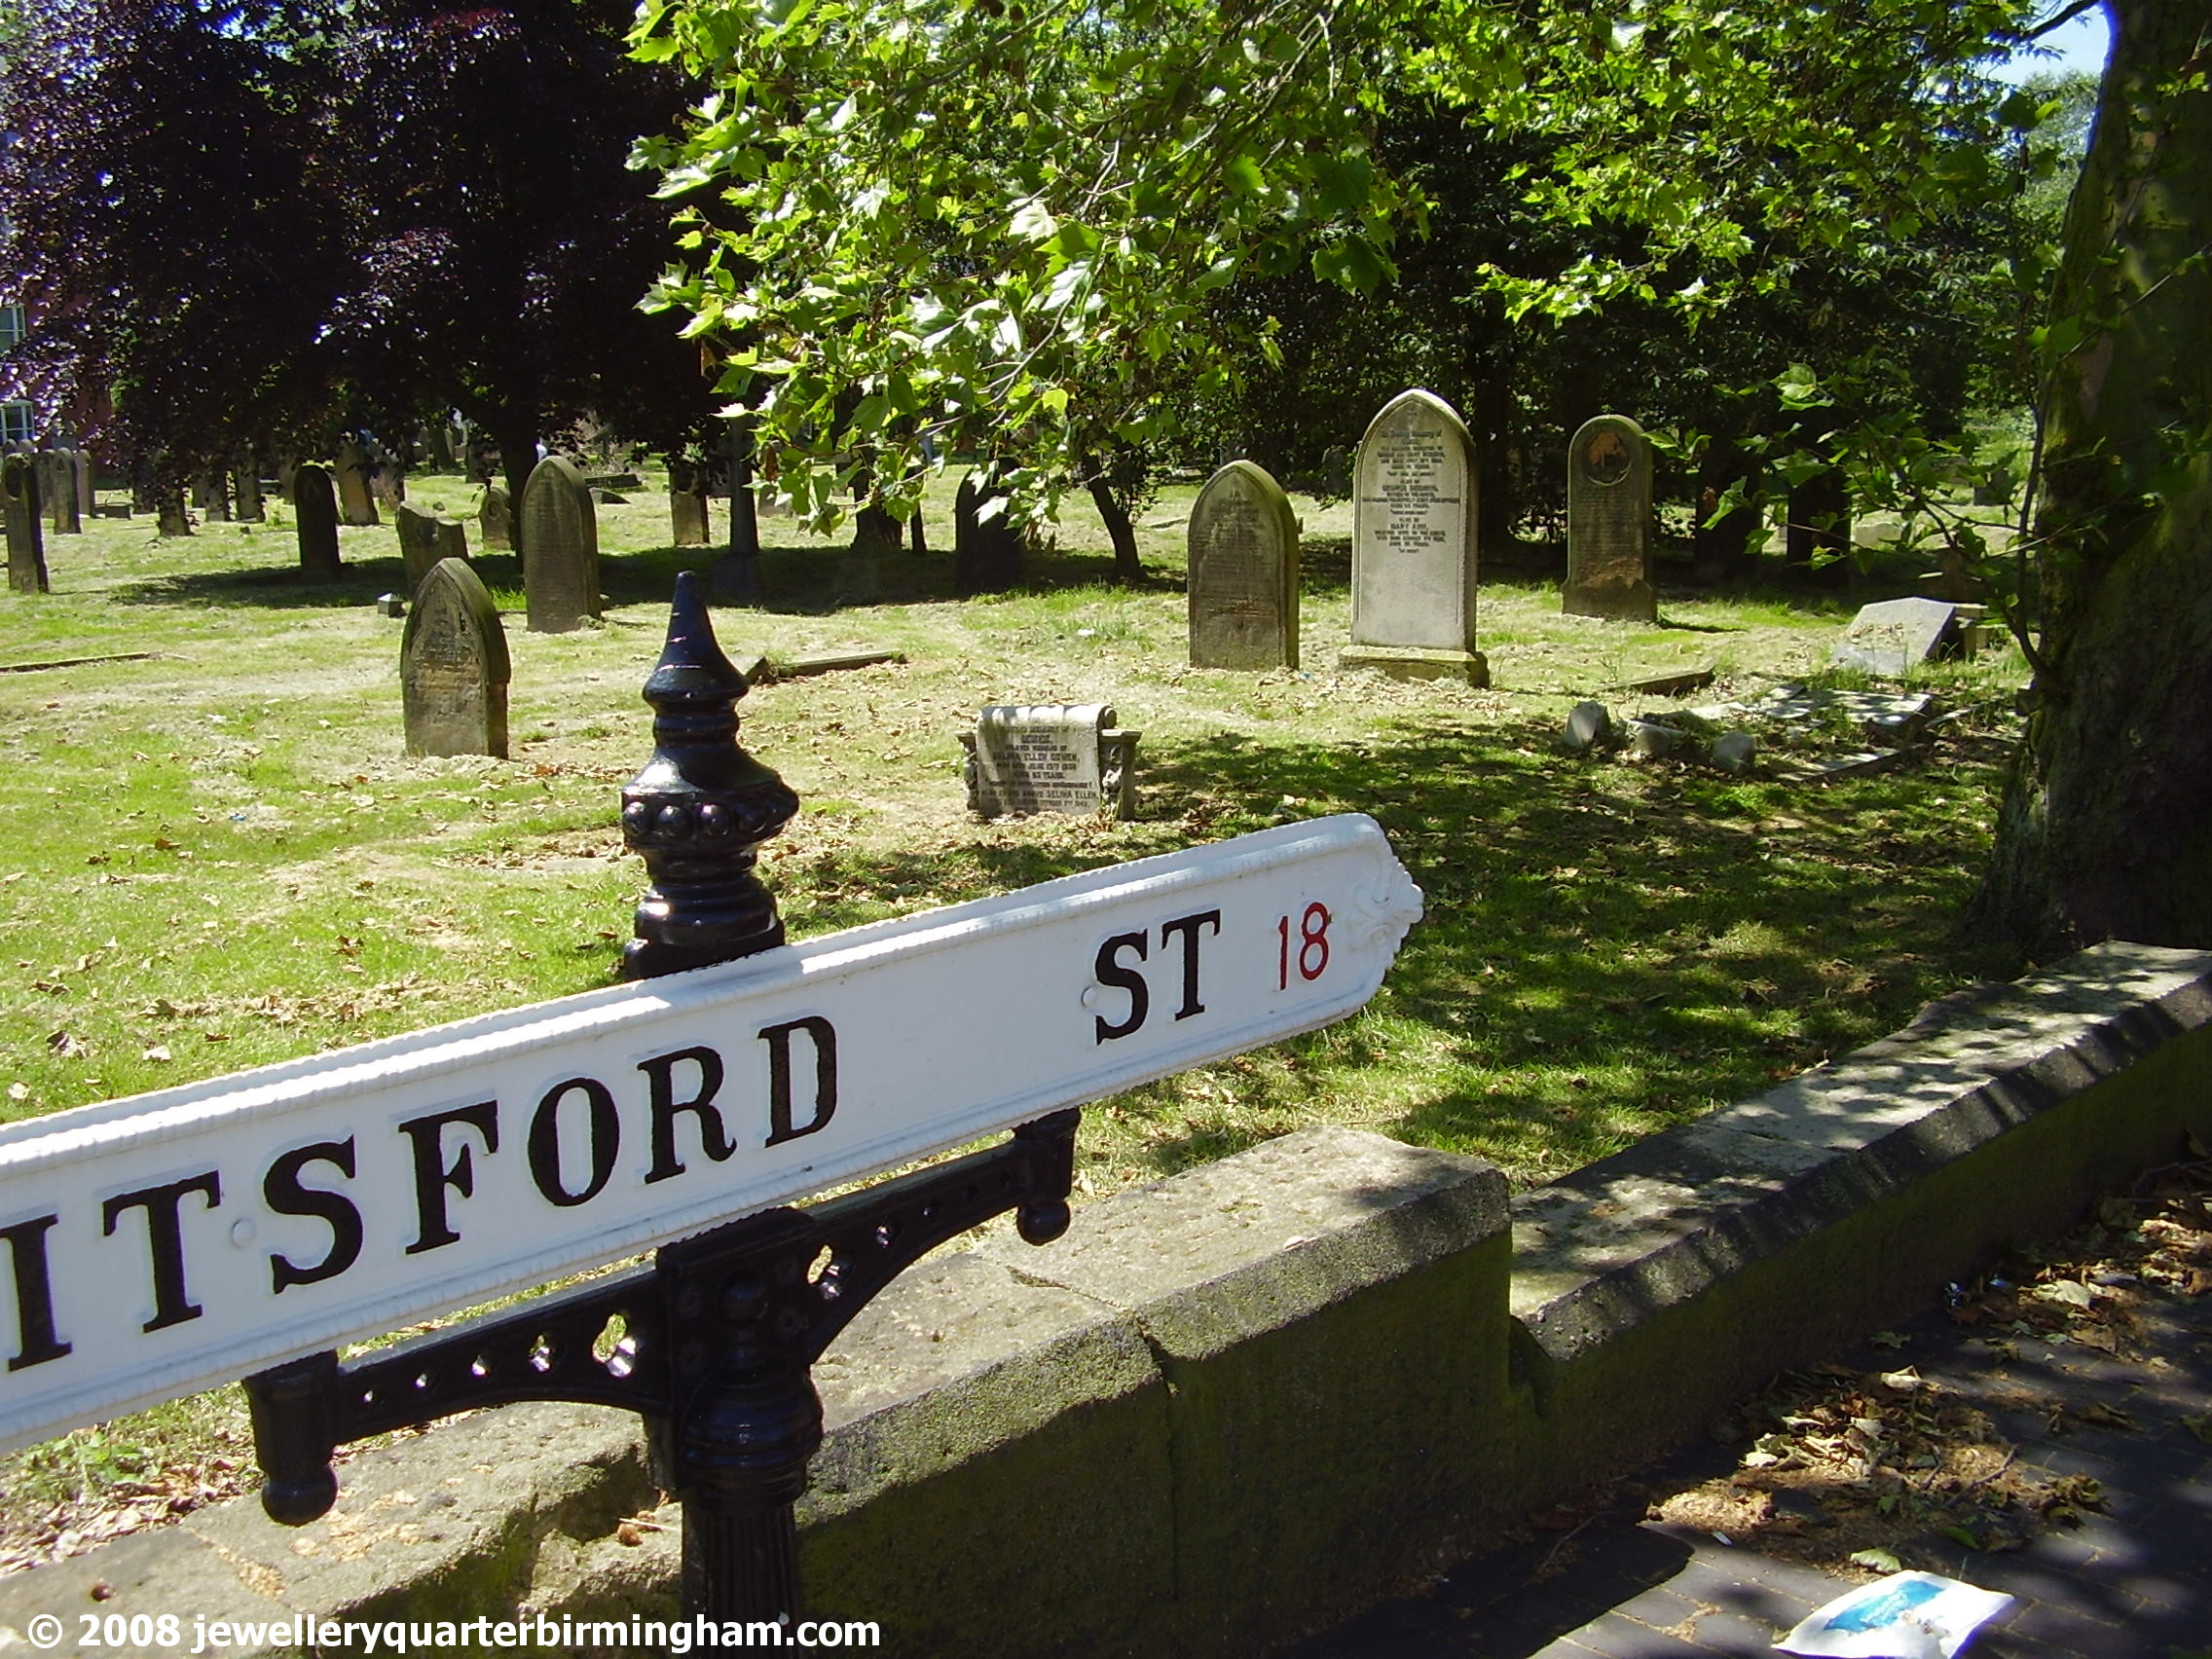 Walking-down-Pitsford-St-with-Mint-Cemetery-on-left.jpg 2008